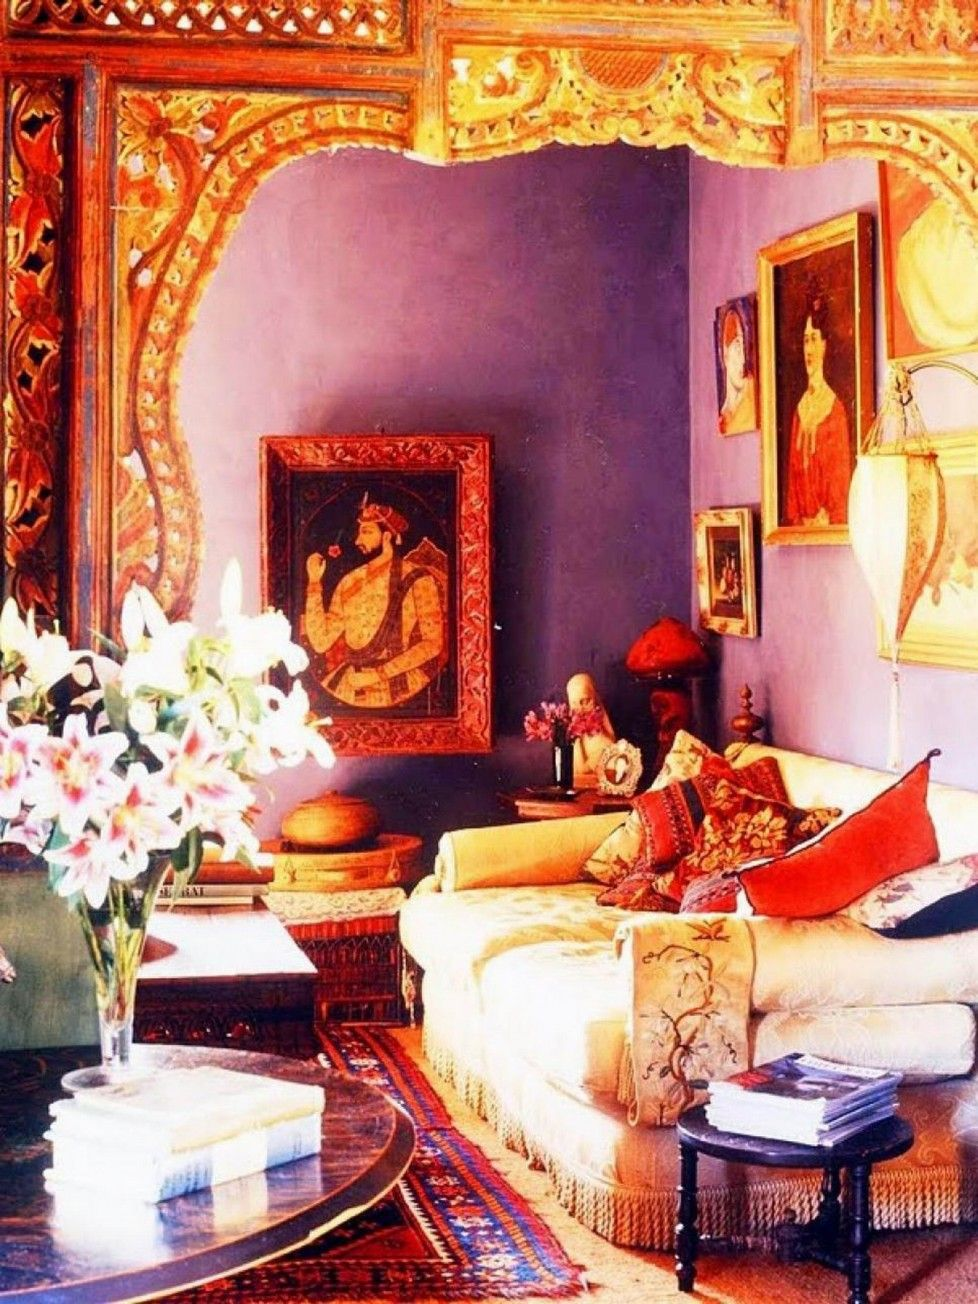 download plenty of color and textured indian traditional living room with a knotted rug an upholstered